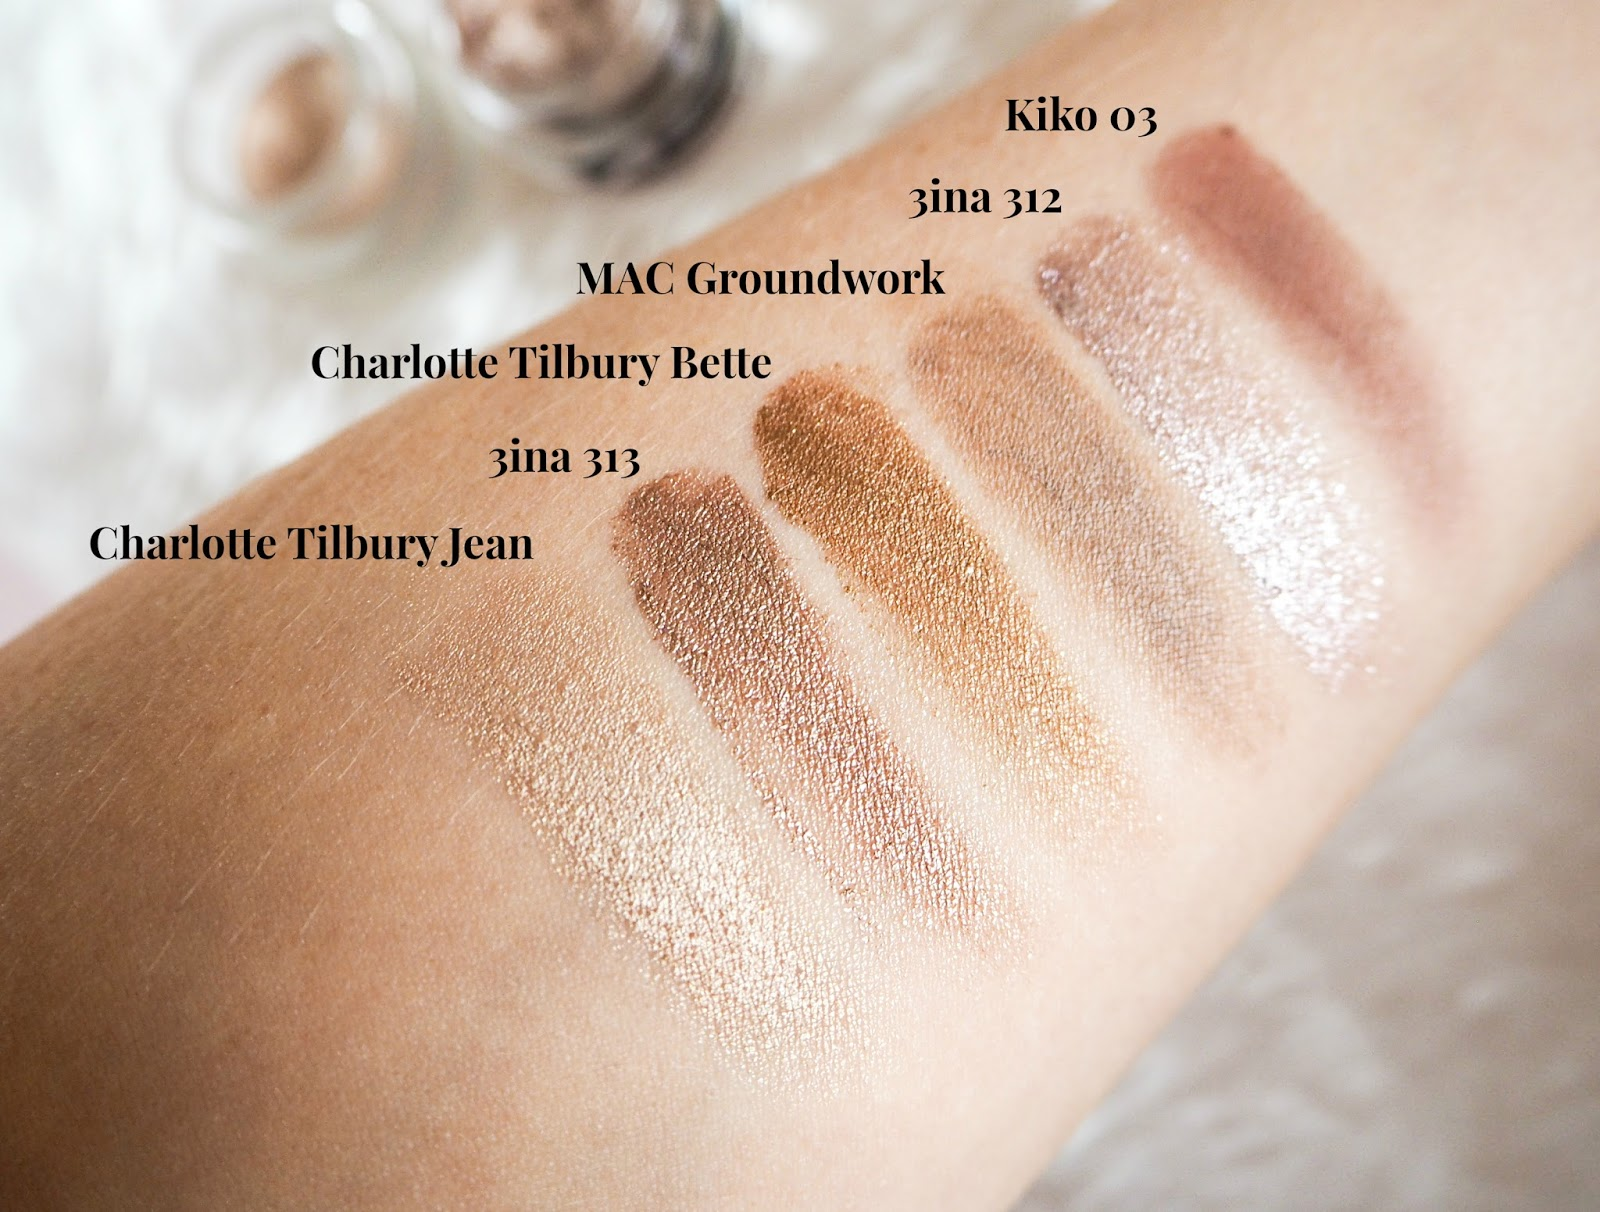 Cream Pot Eyeshadow Swatches, Charlotte Tilbury Jean and Bette, 3ina 312 and 313, Kiko 03 and MAC Groundwork